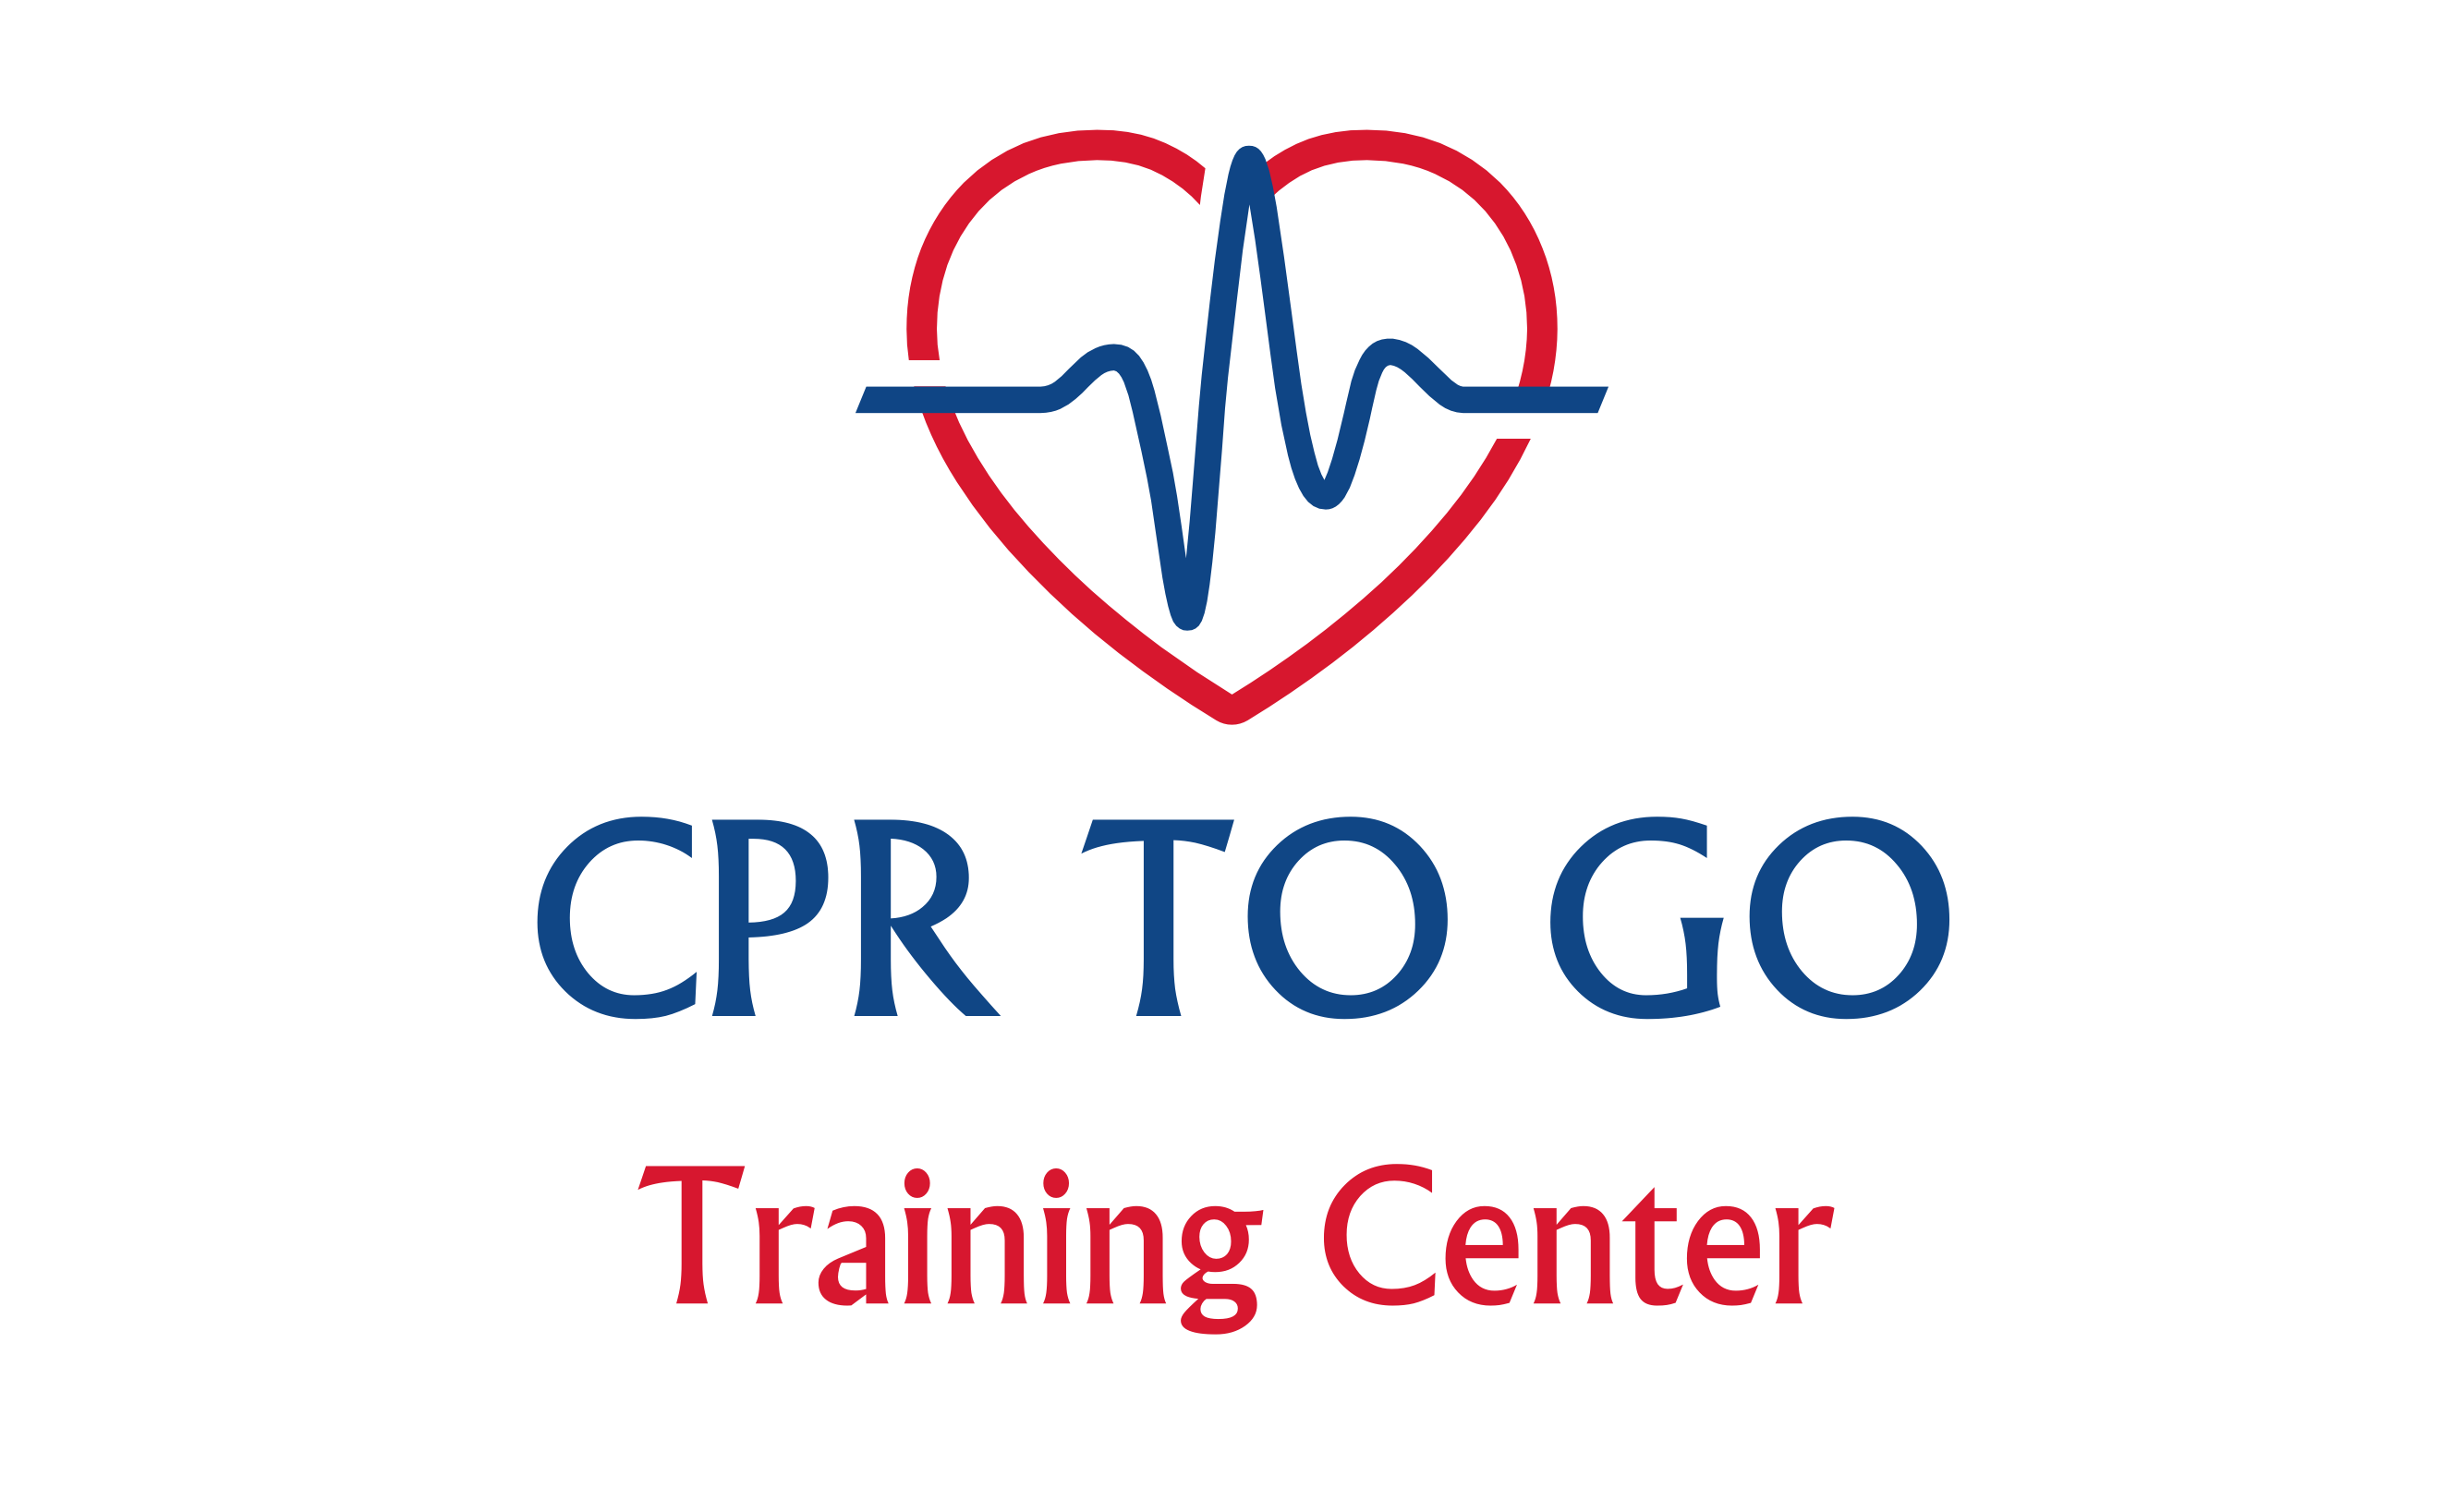 Home Cpr To Go Training Center